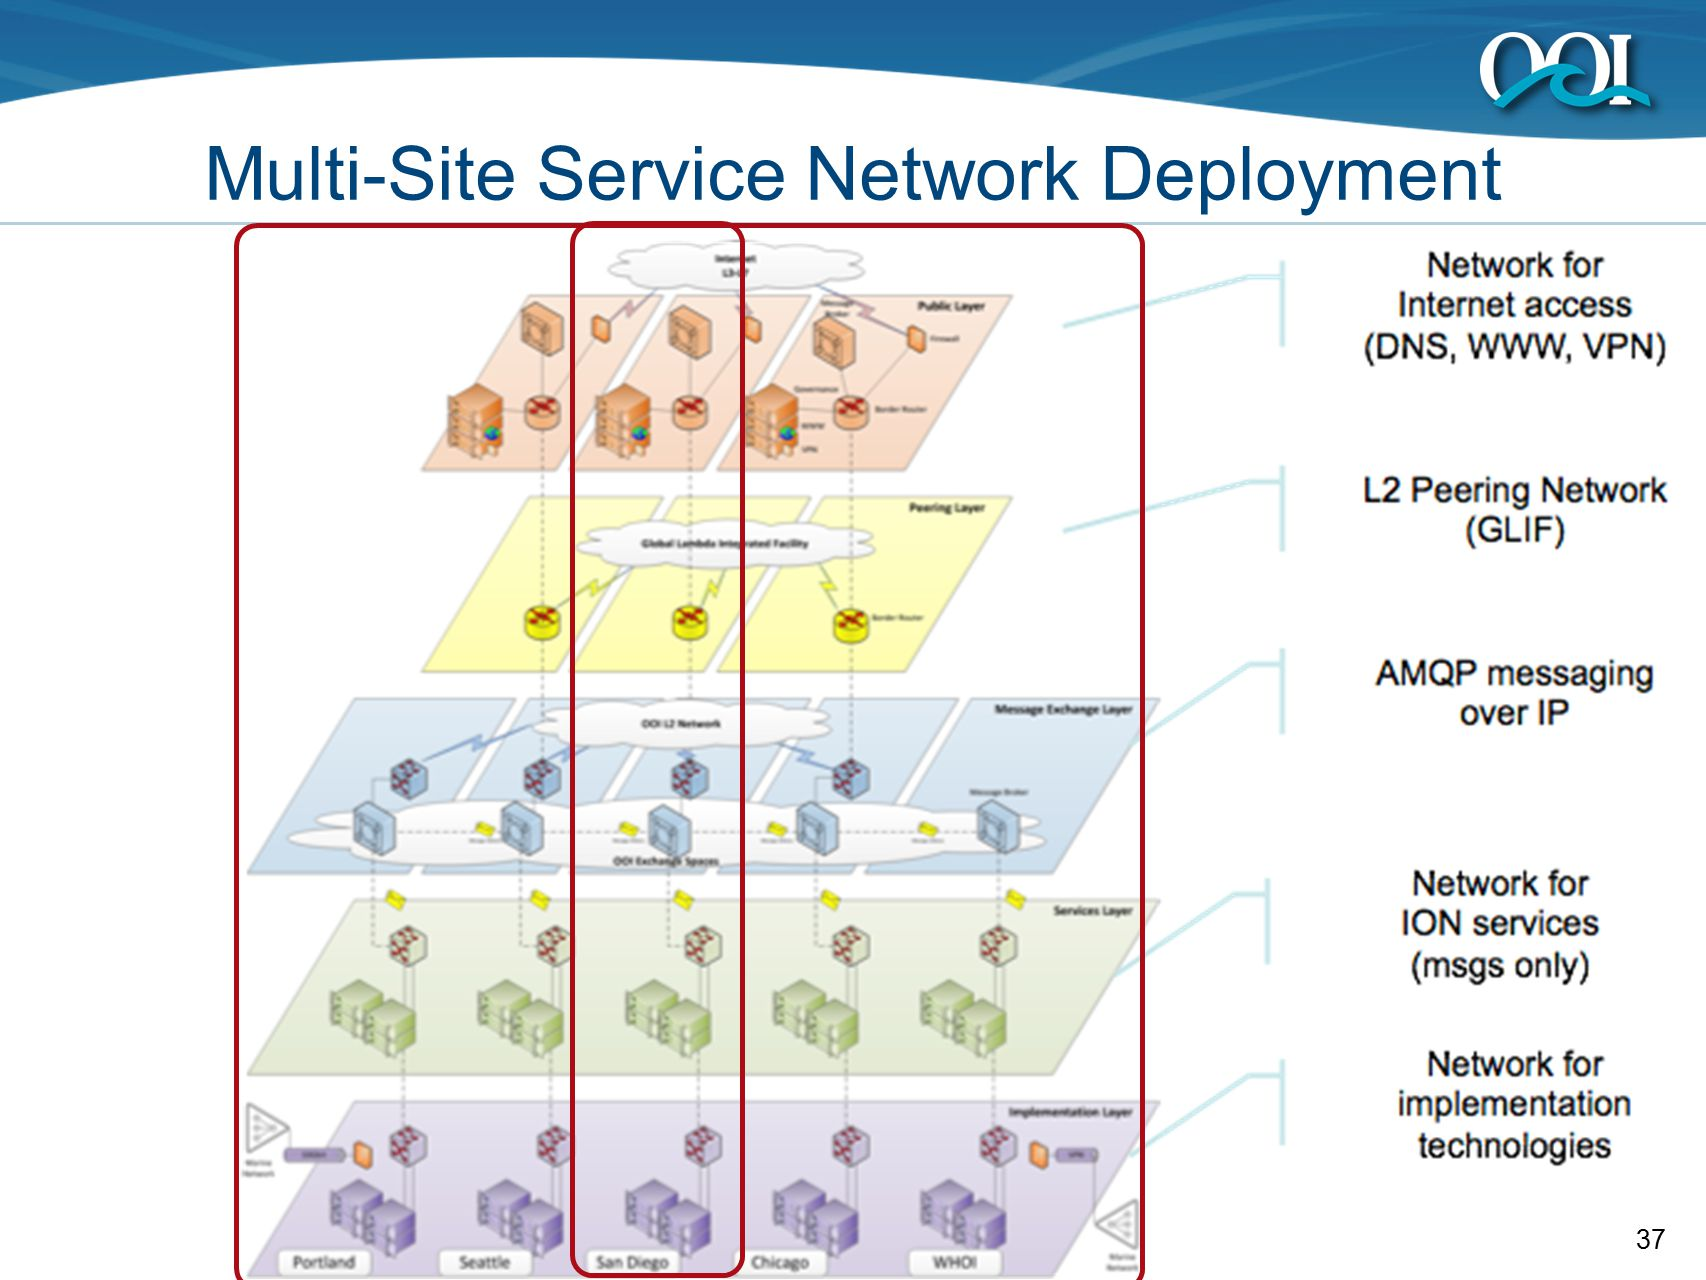 37 Multi-Site Service Network Deployment